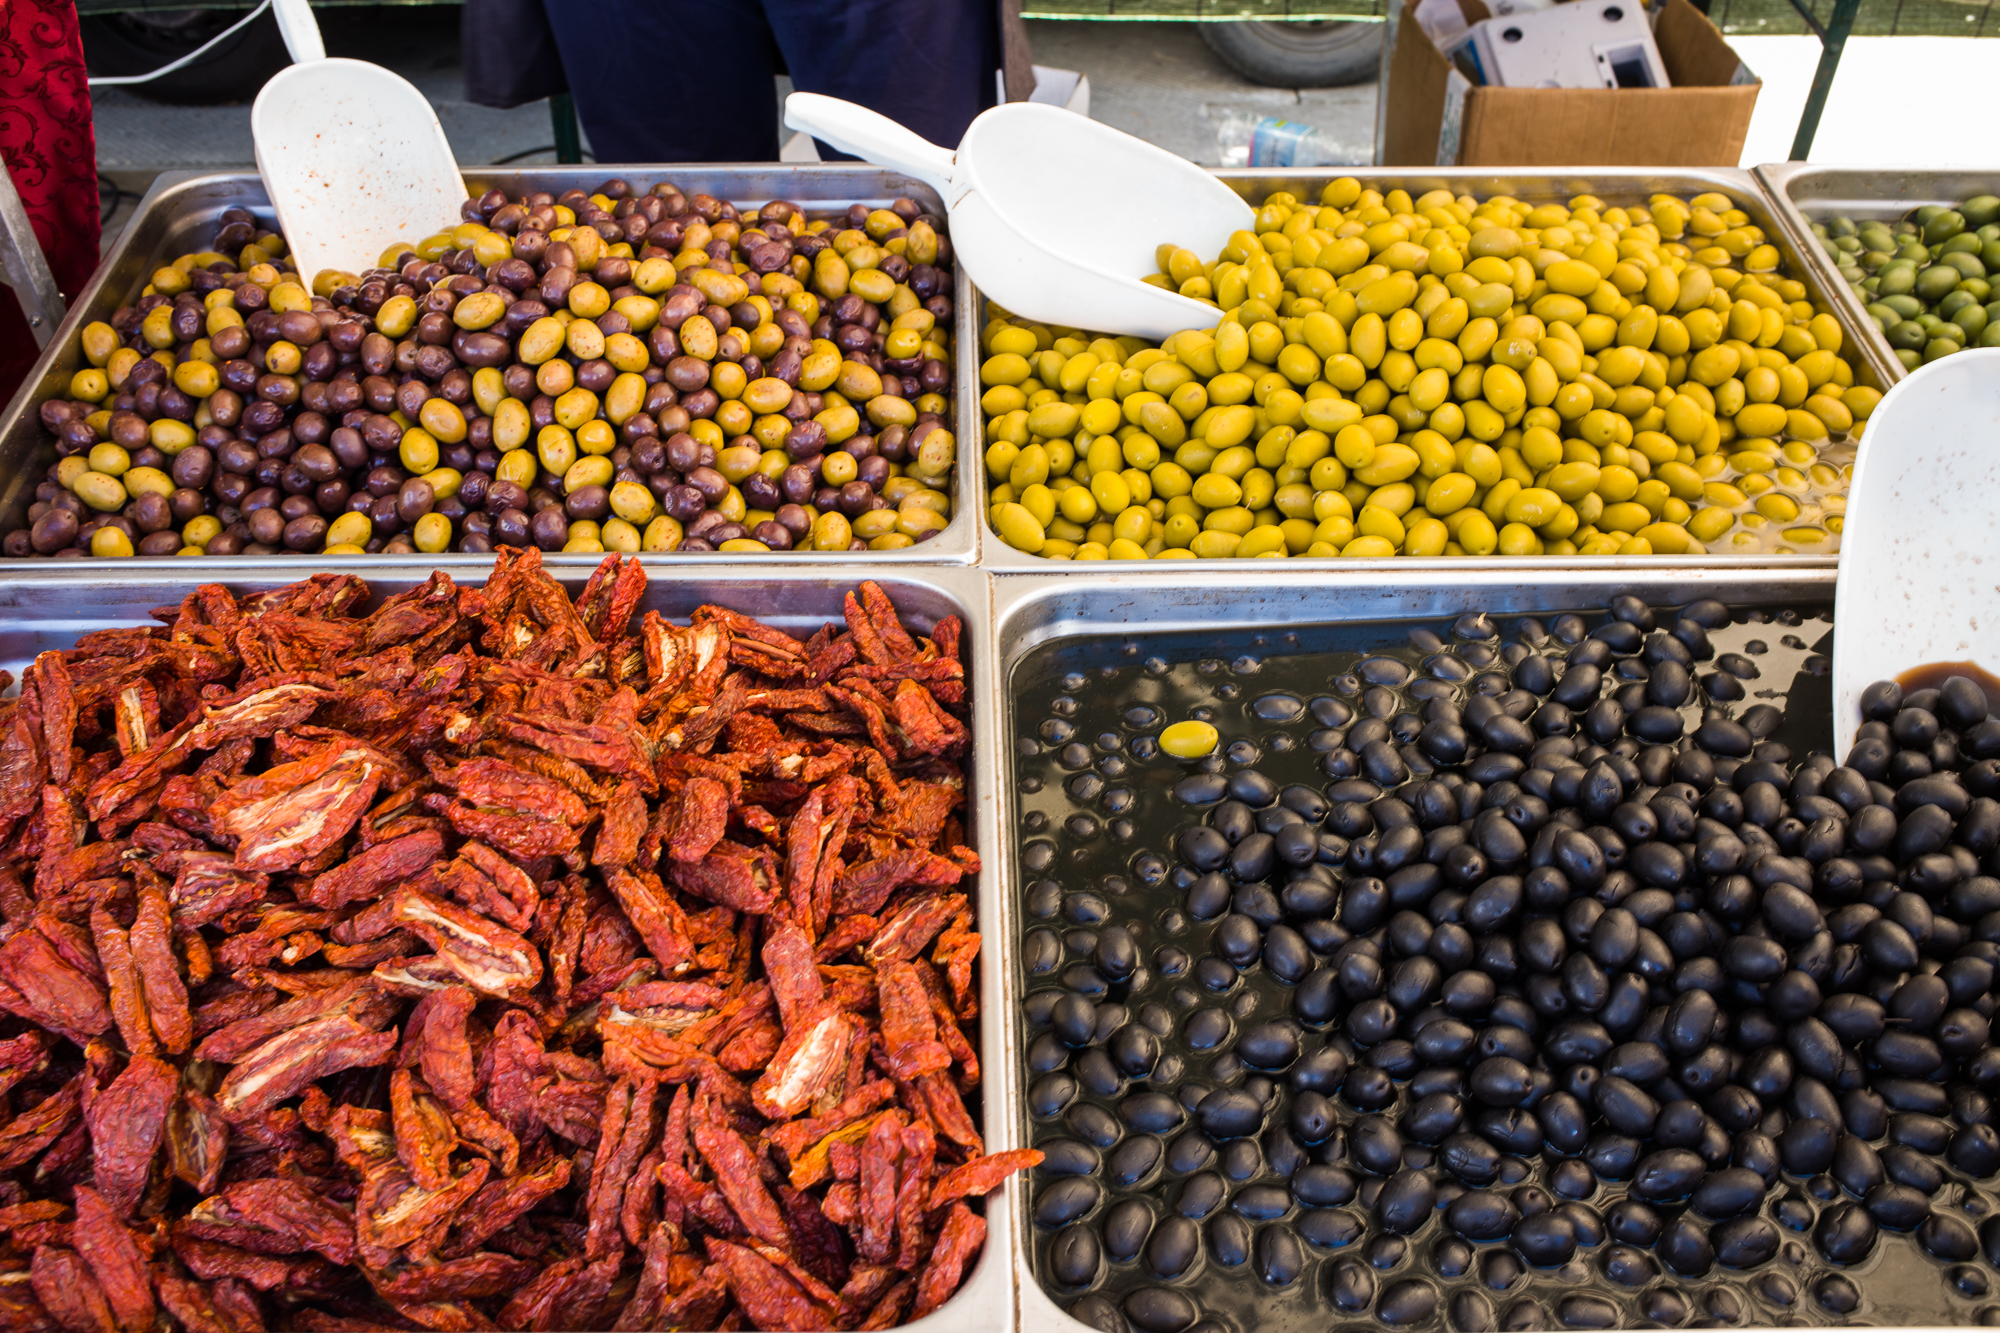 Olives at the Tuscan market